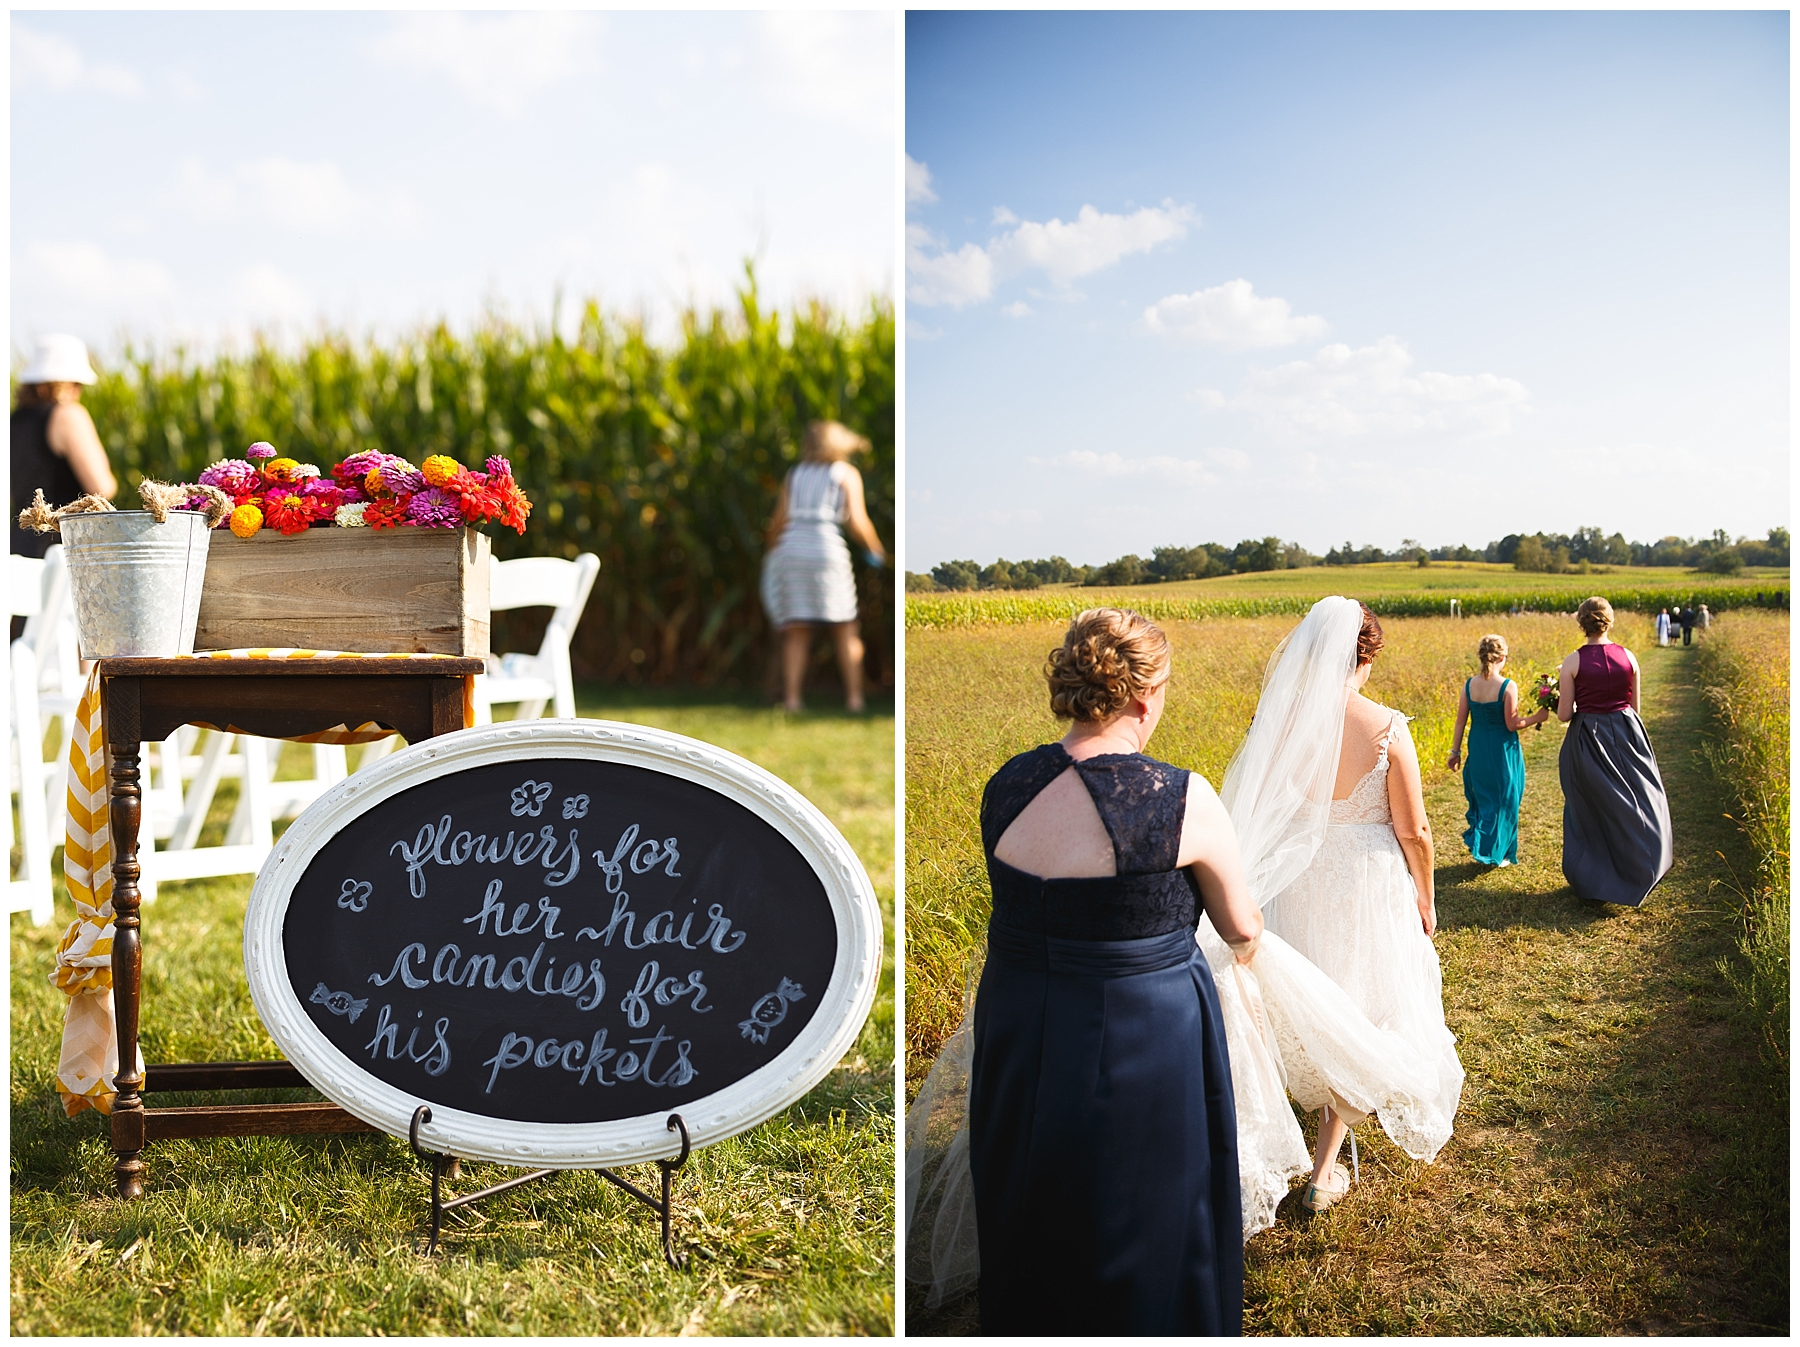 Kim + Jeff Married at Mapleton Barn - Chelsea Matson Photography 2017